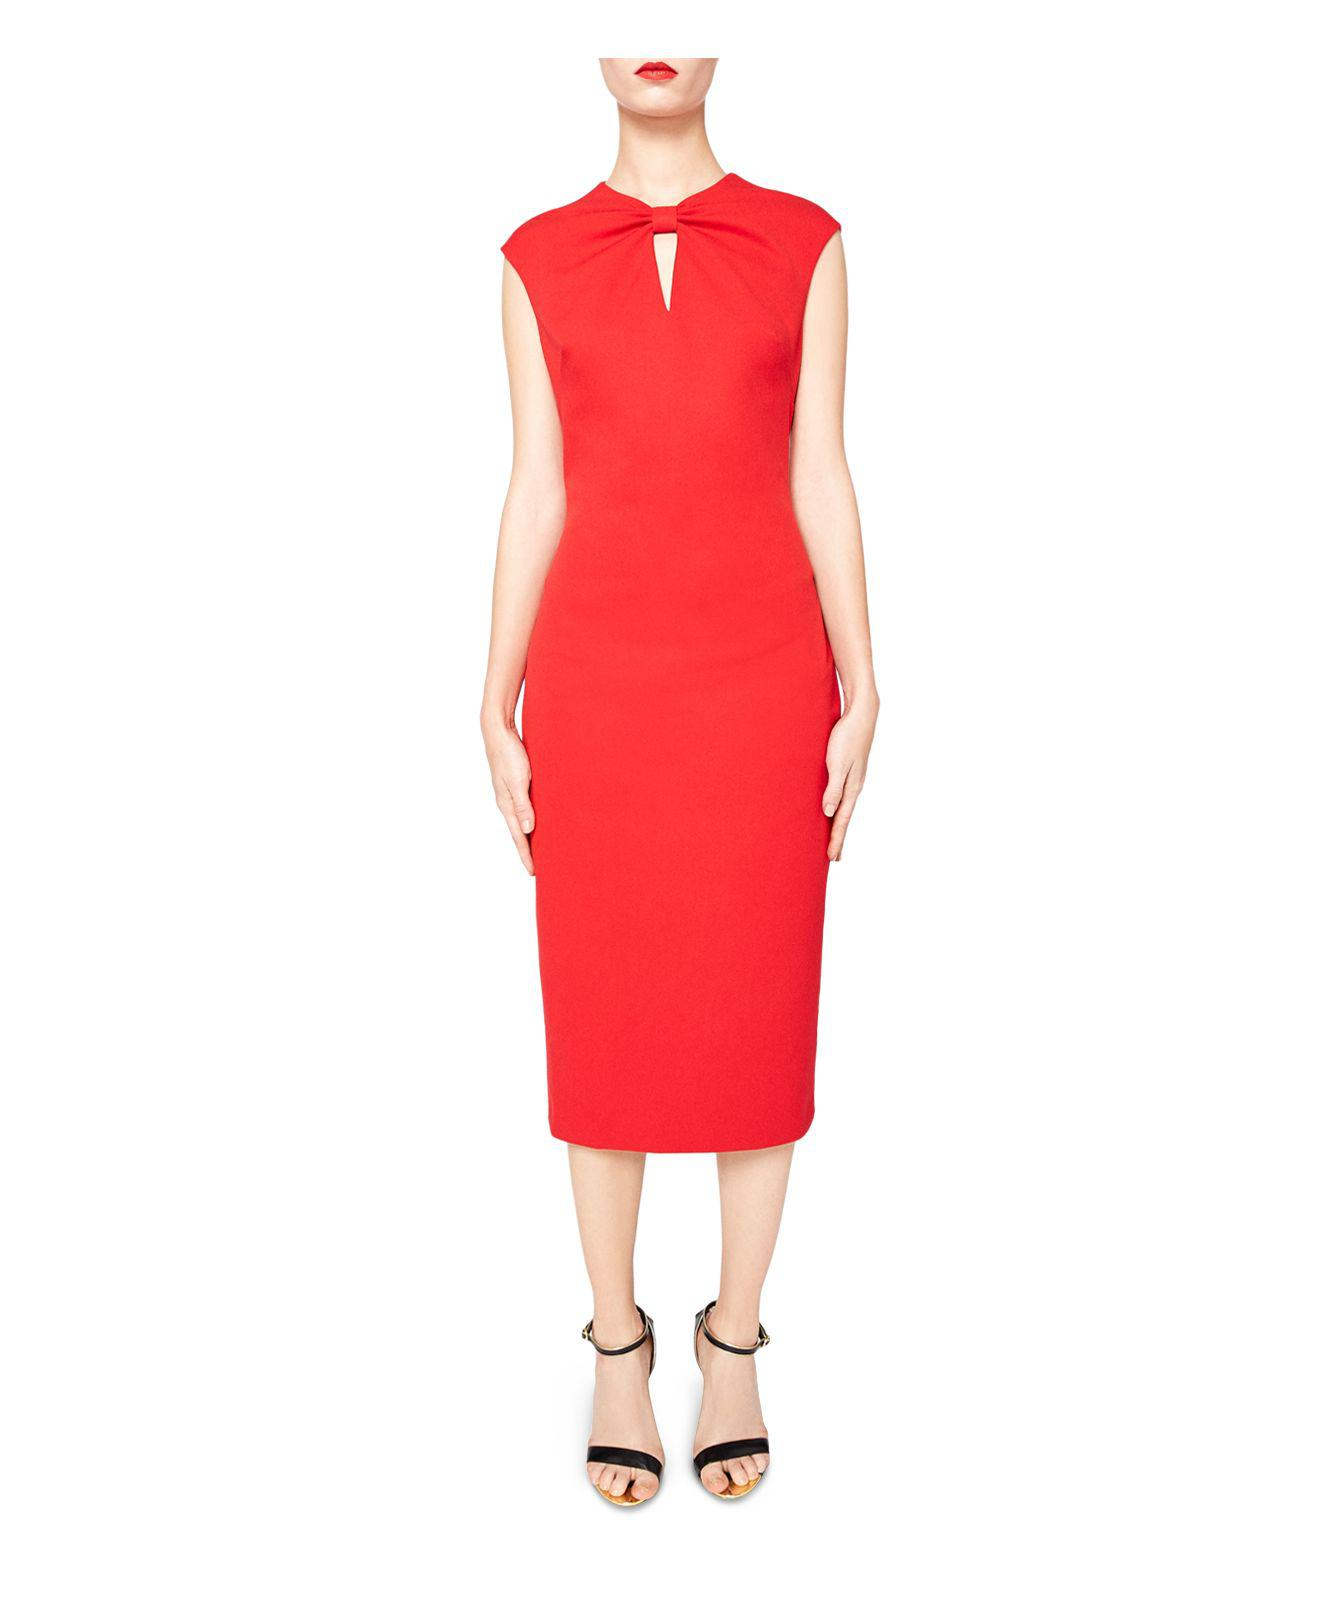 9ca17b1dbadd24 Lyst - Ted Baker Kezzia Bow-neck Dress in Red